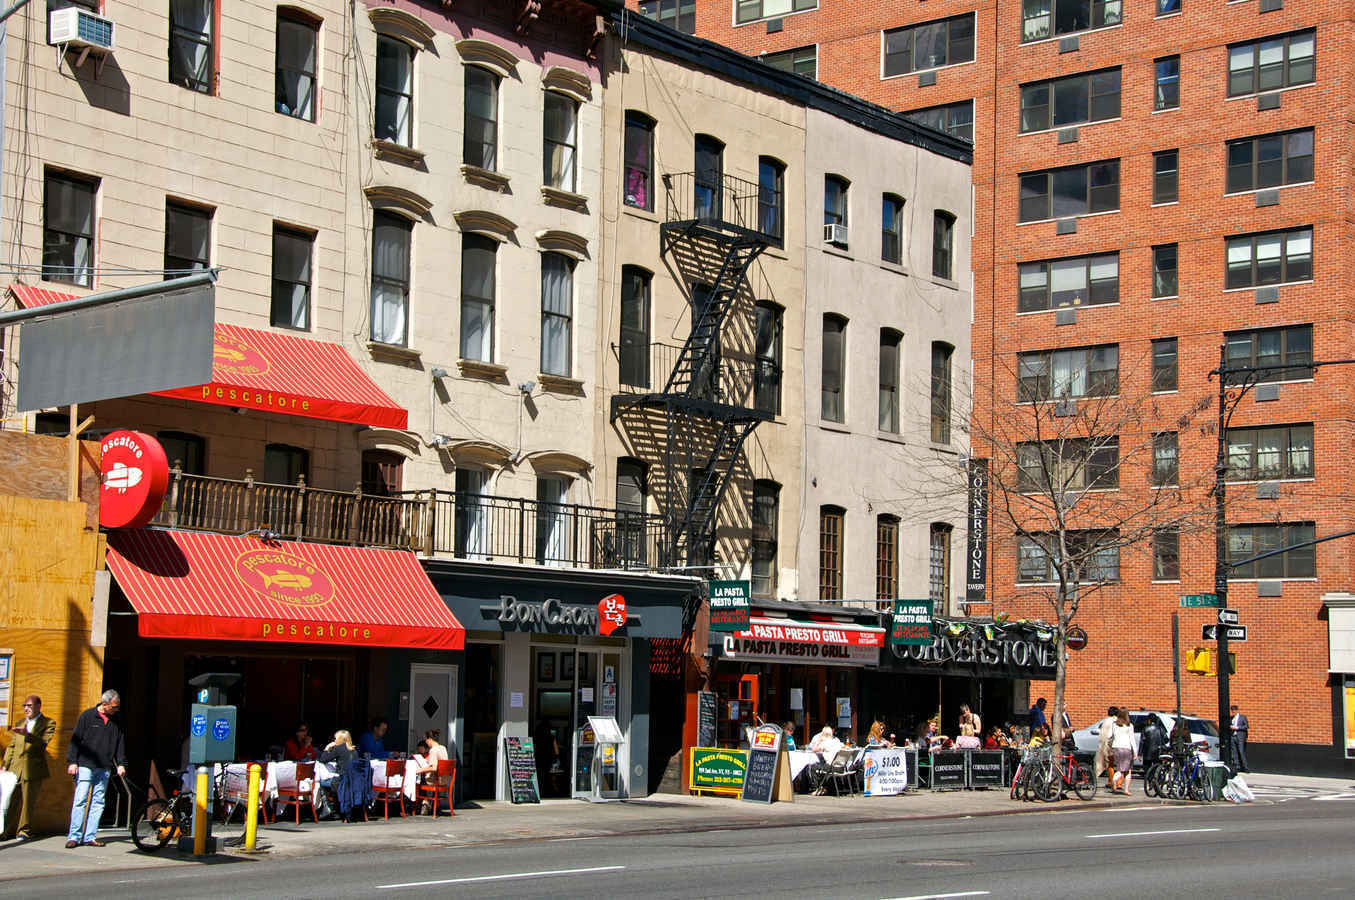 Restaurants and cafes on the Upper East Side of Manhattan